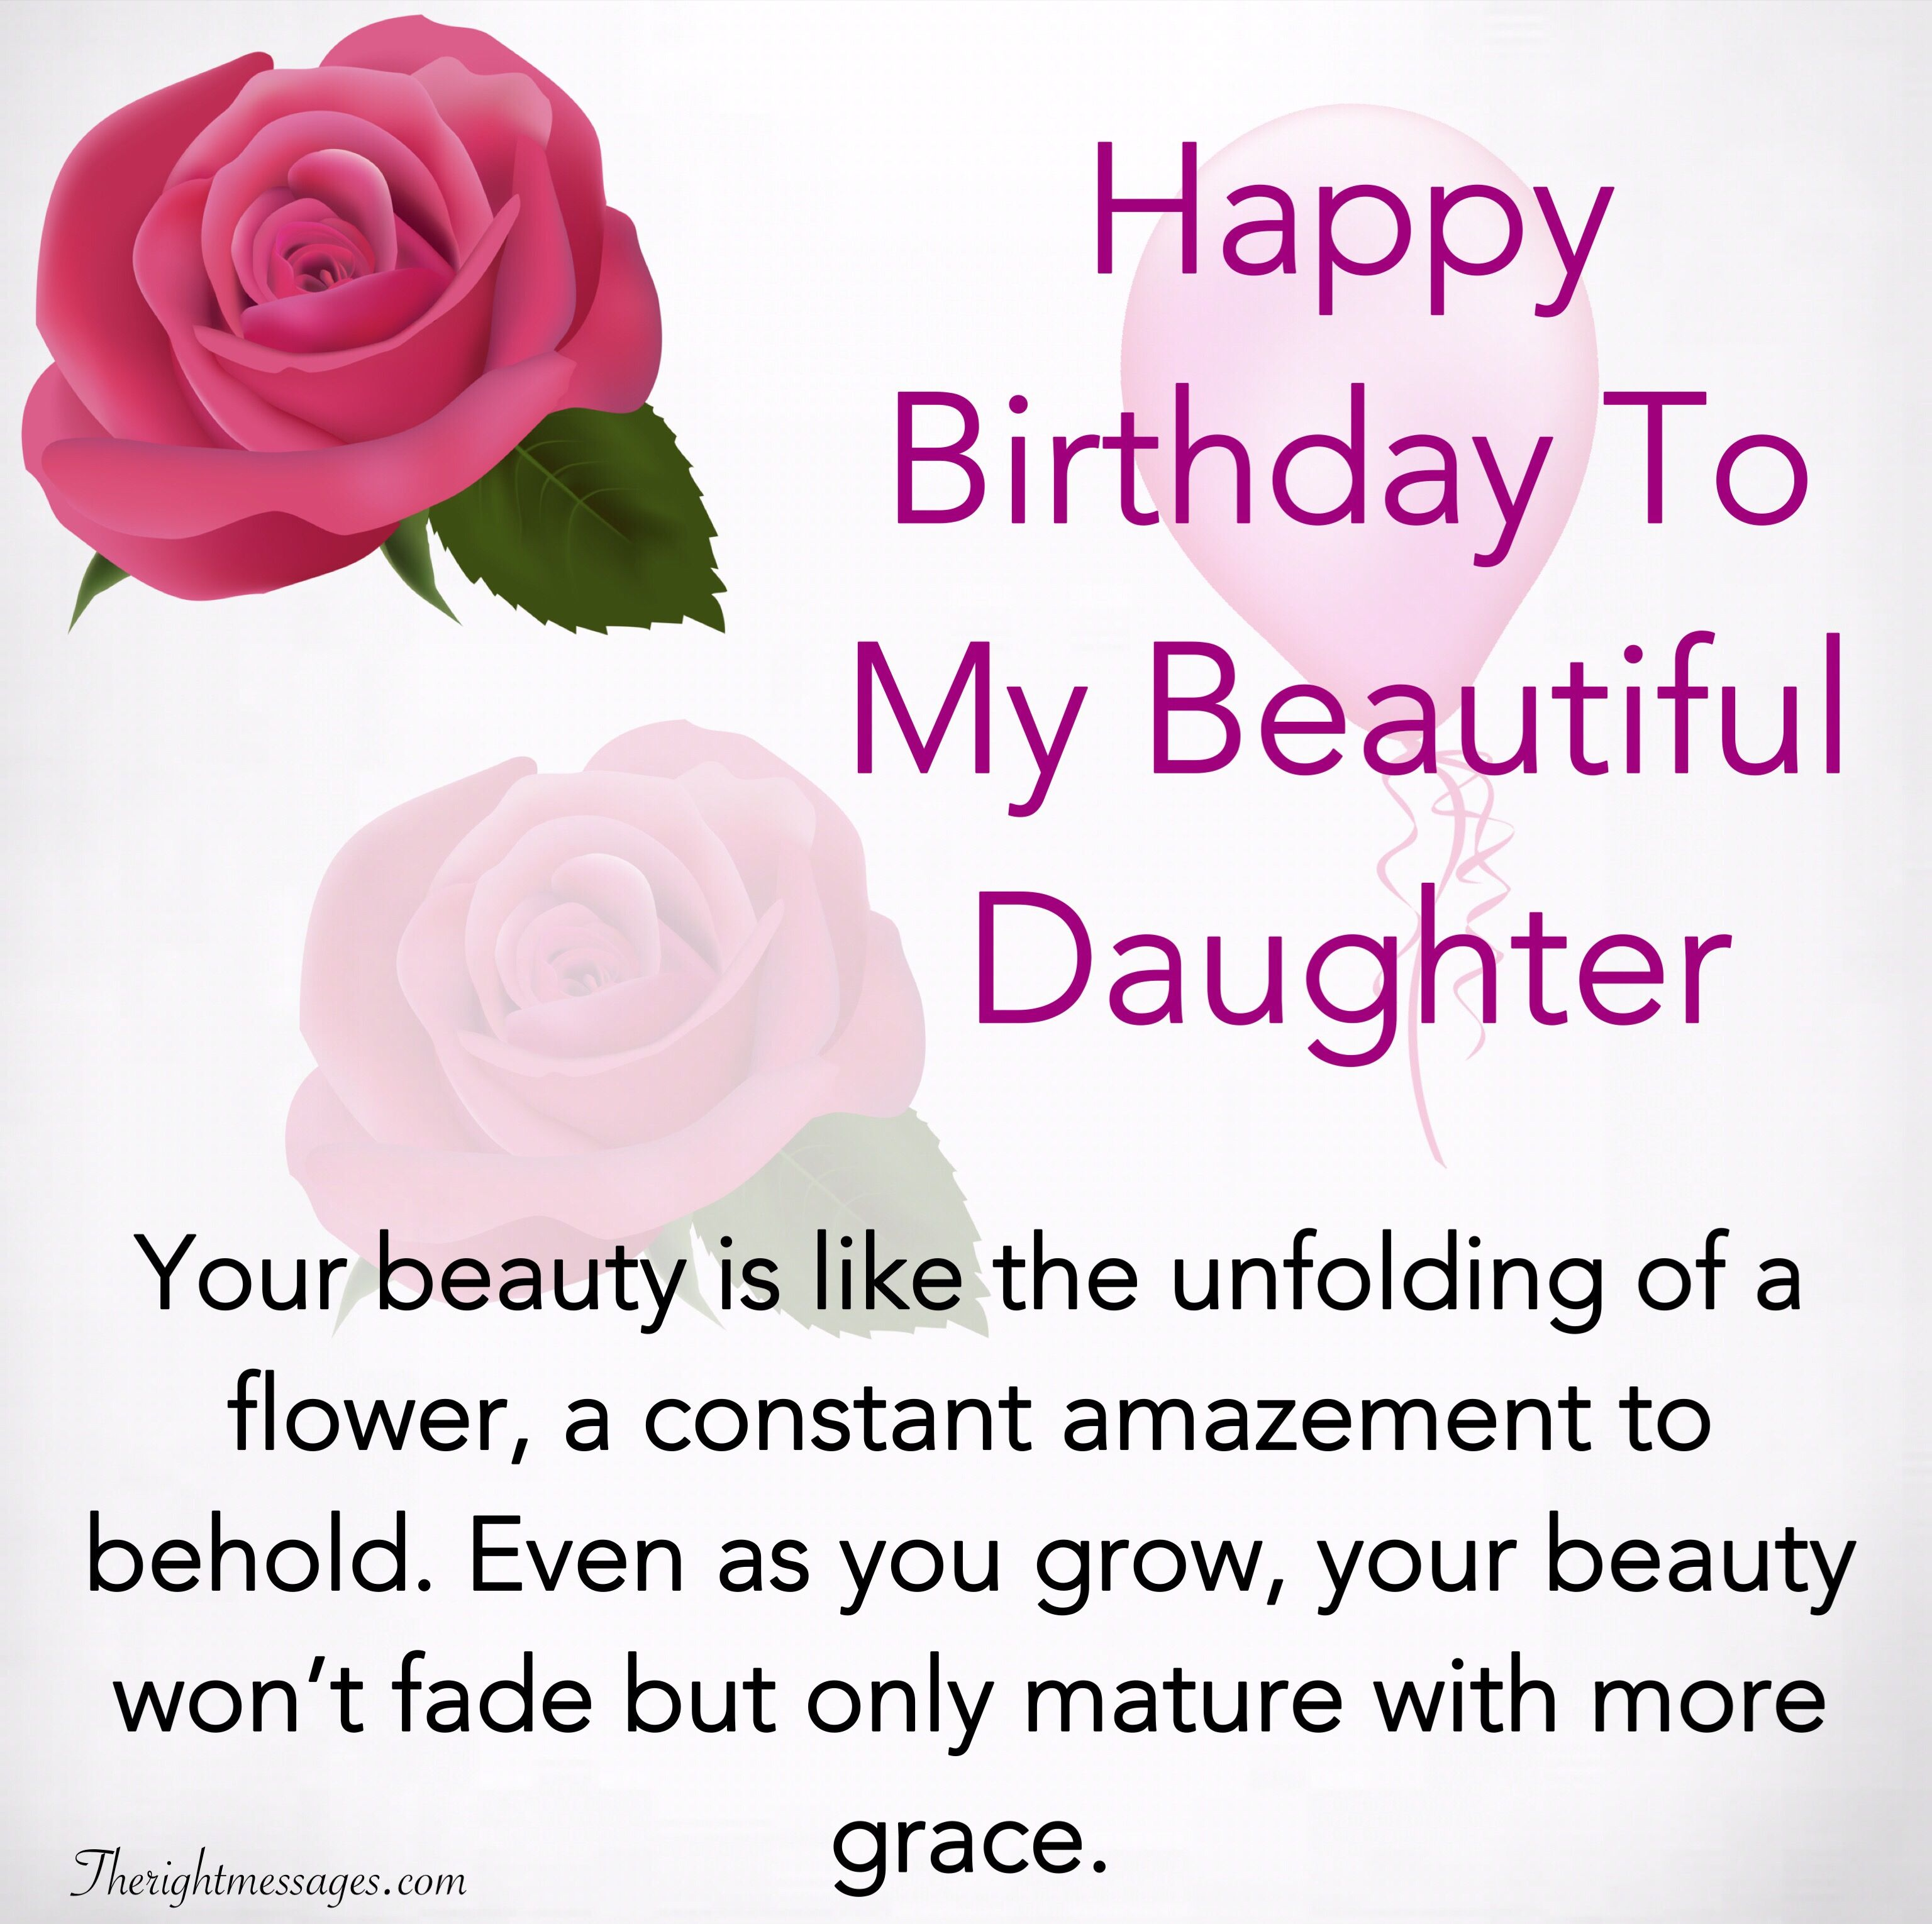 Happy Birthday Wishes For Daughter Inspirational